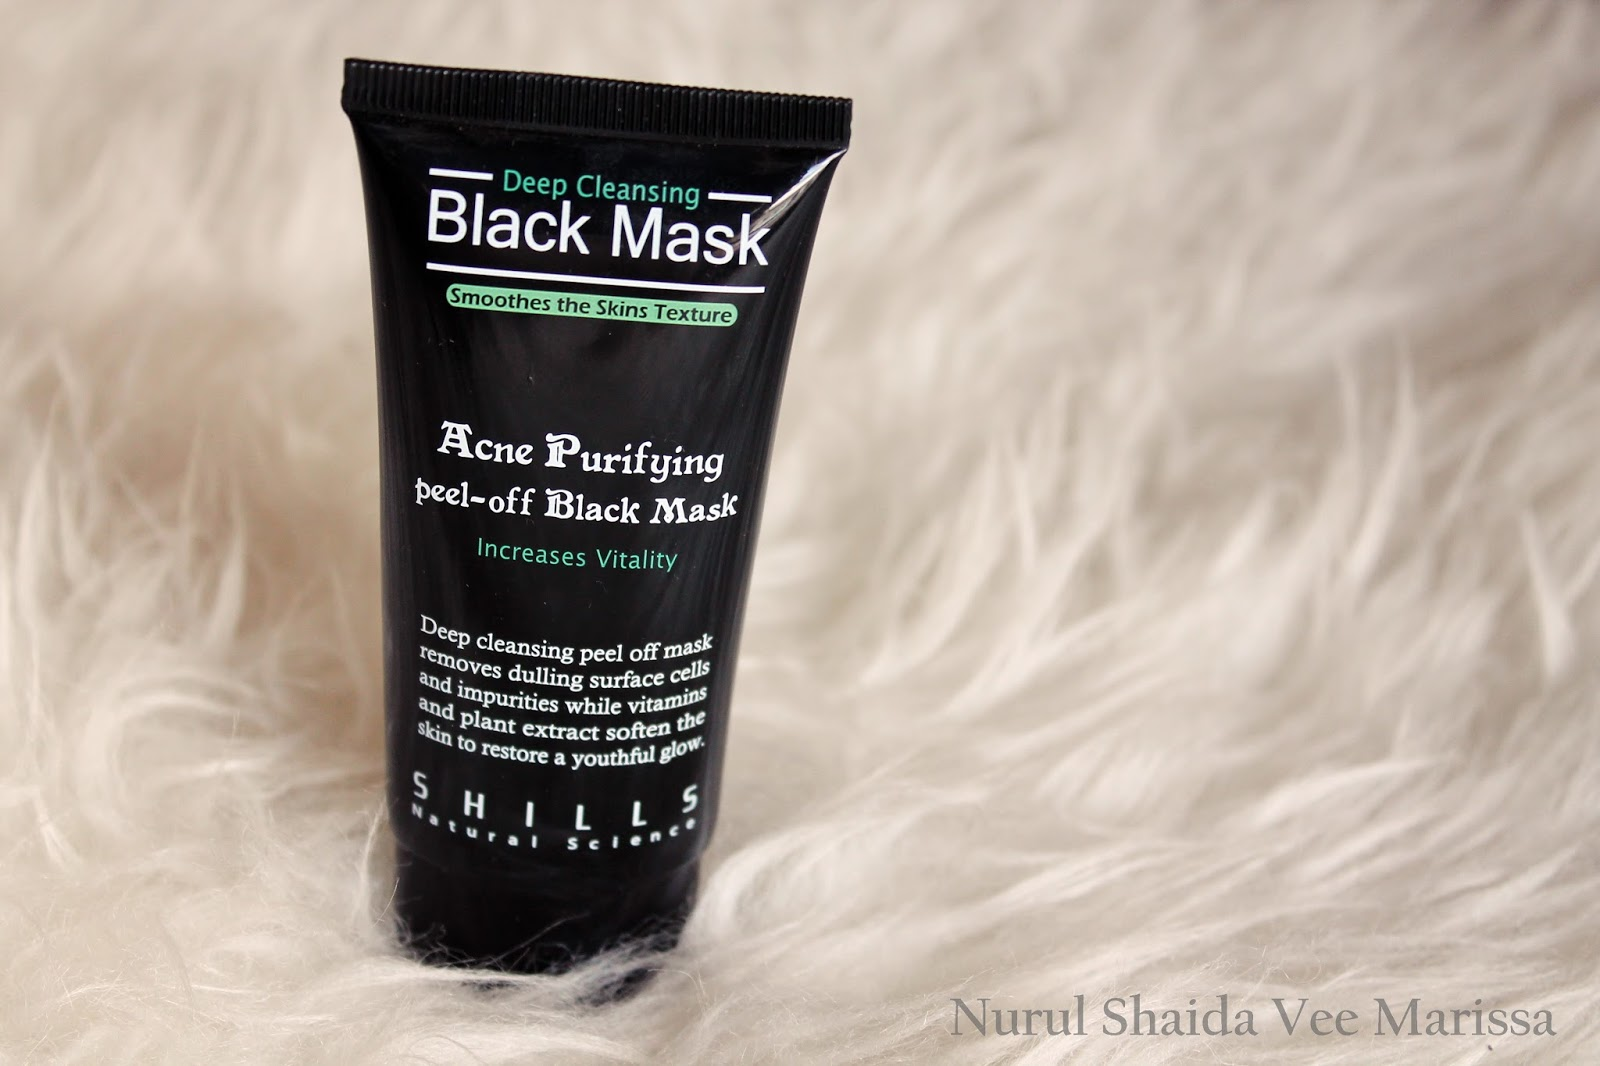 deep cleansing black mask where to buy